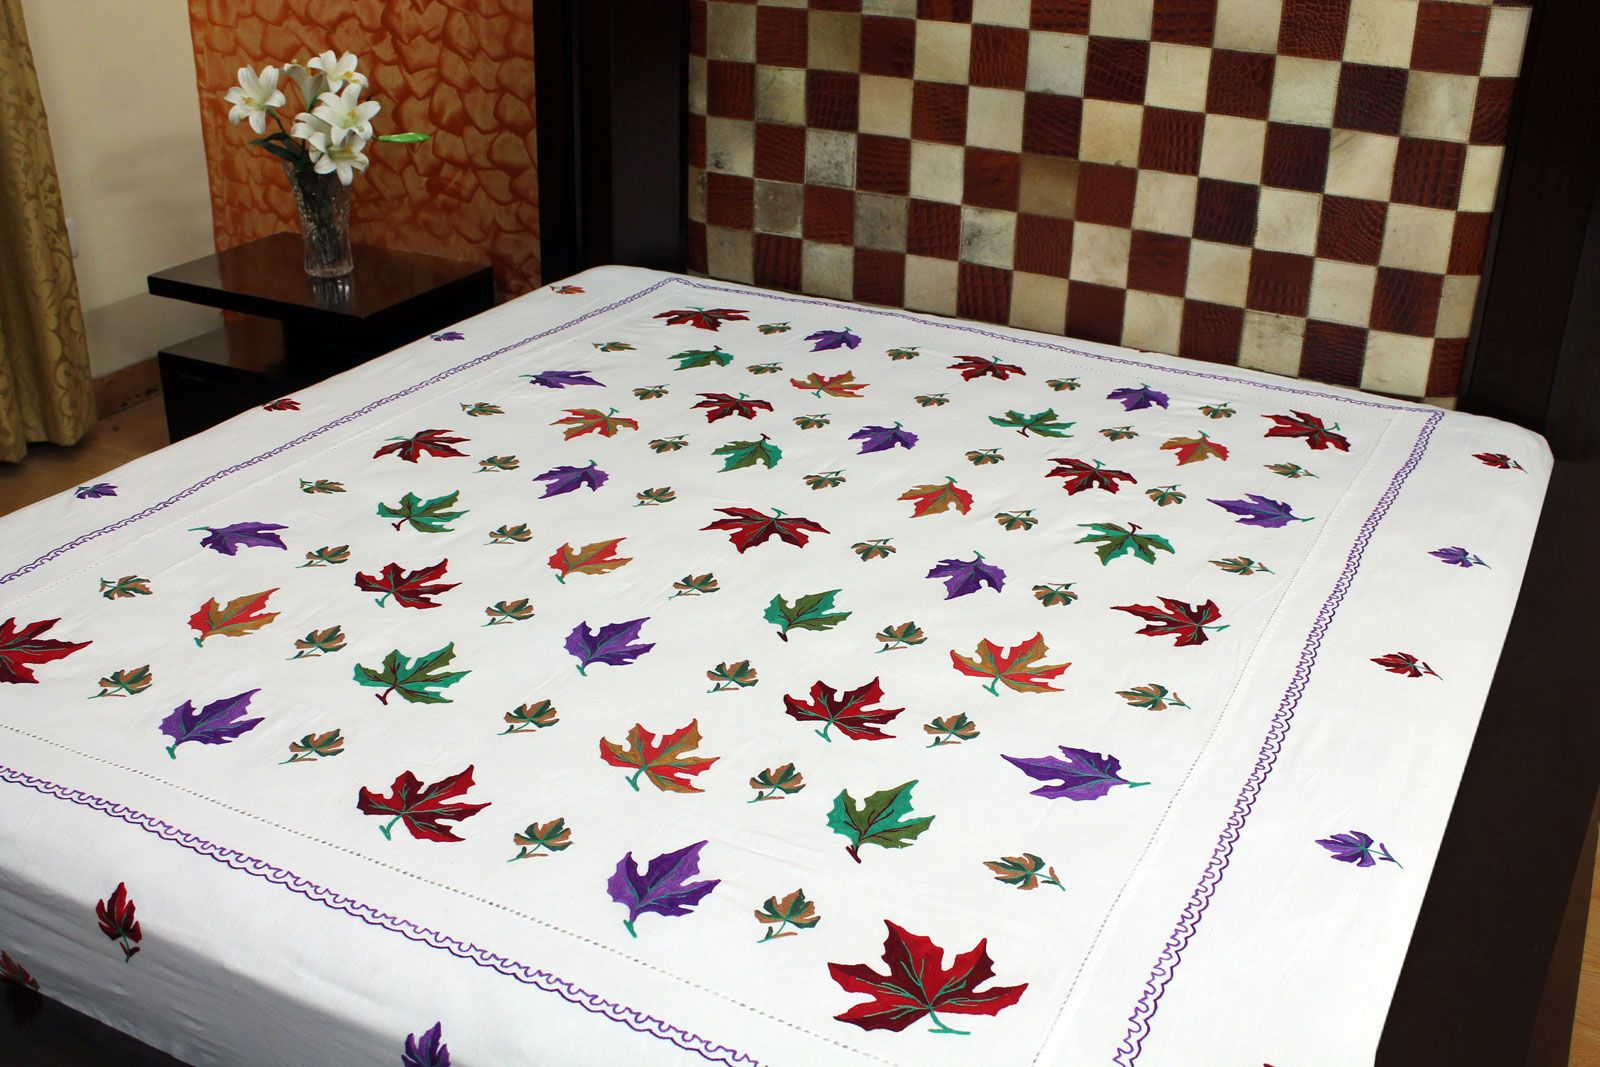 Ribbon Work Bed Sheets Designs - Work hand embroidery bed sheet designs l 76709dba3795dff2